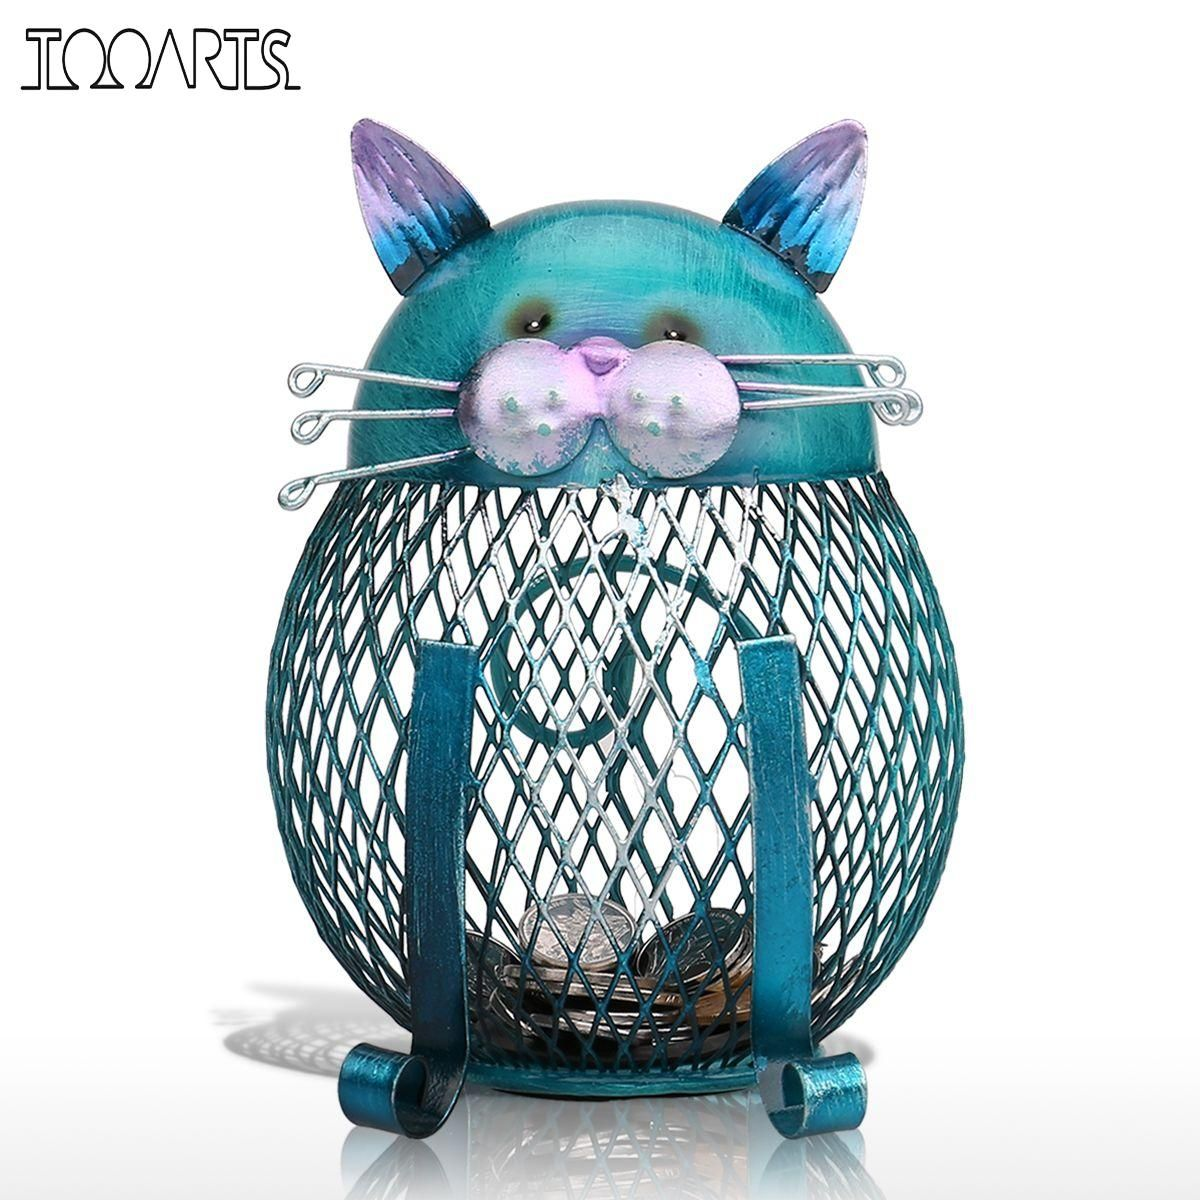 Tooarts Blue Cat Bank Shaped Piggy Bank Metal Coin Bank Money Box Figurines Saving Money Home Decor New Year Gift For Kids